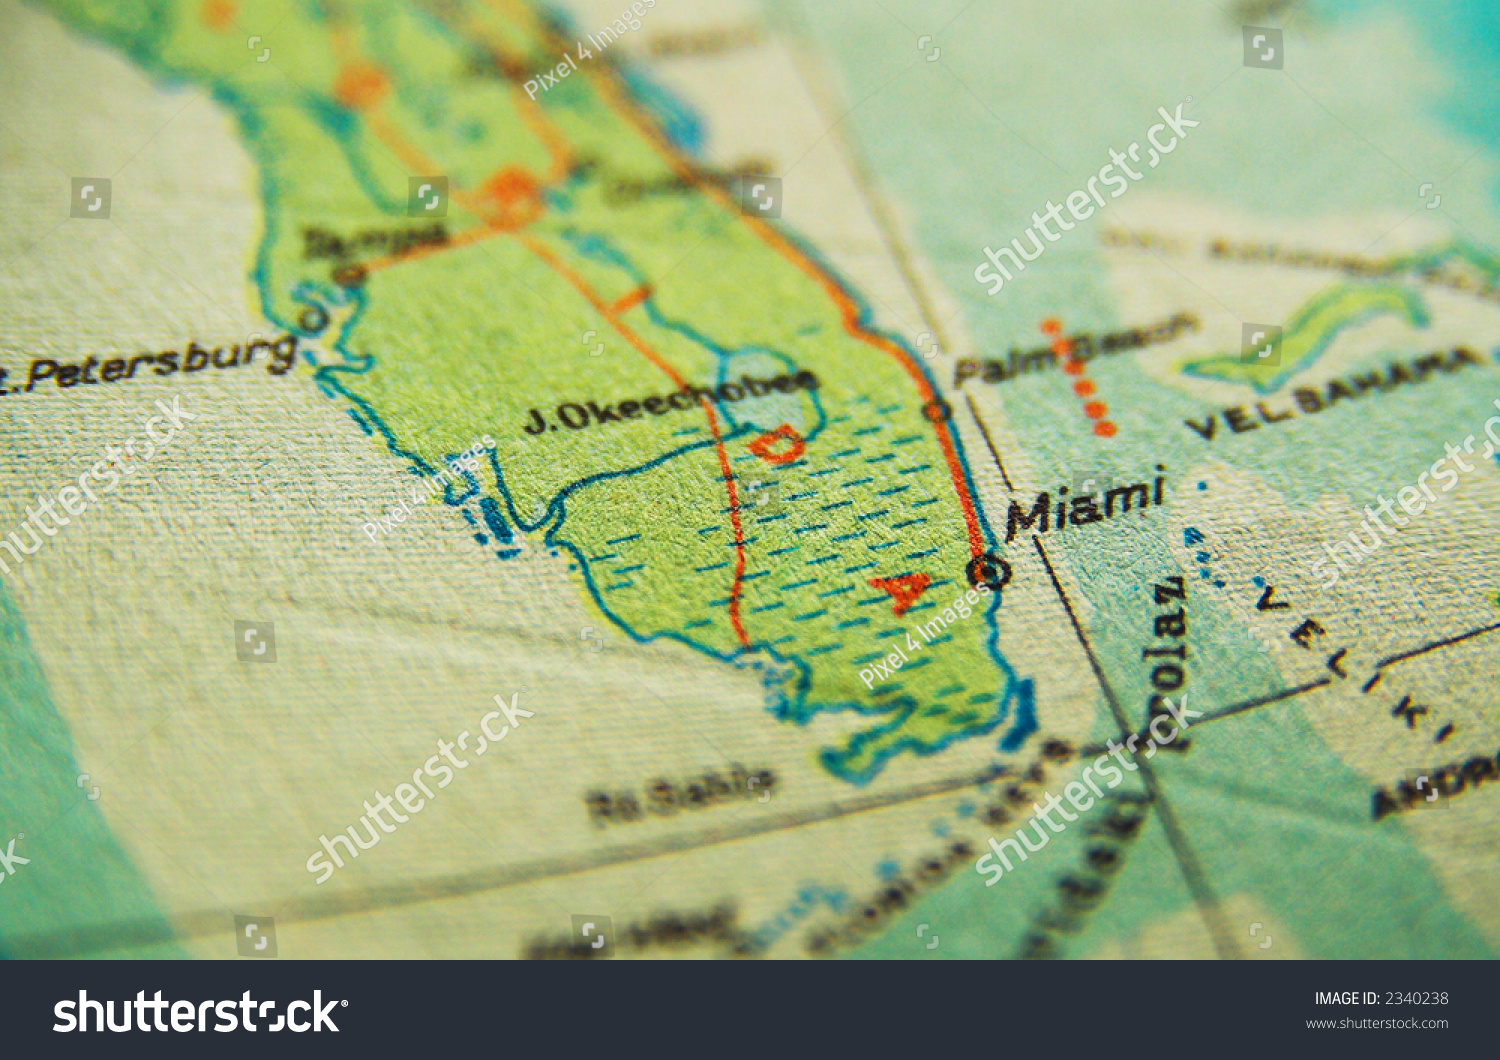 Us Map Miami Florida Map Stock Photo Shutterstock - Miami on us map